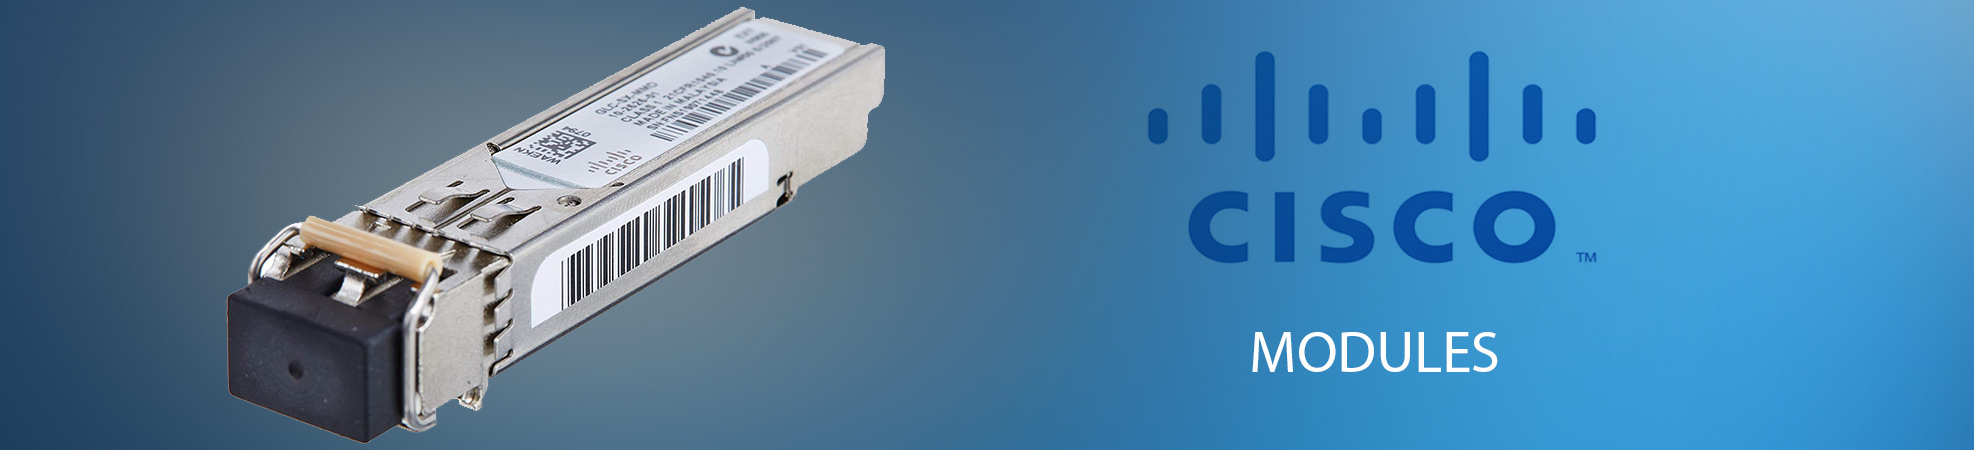 Cisco-modules-top-banner